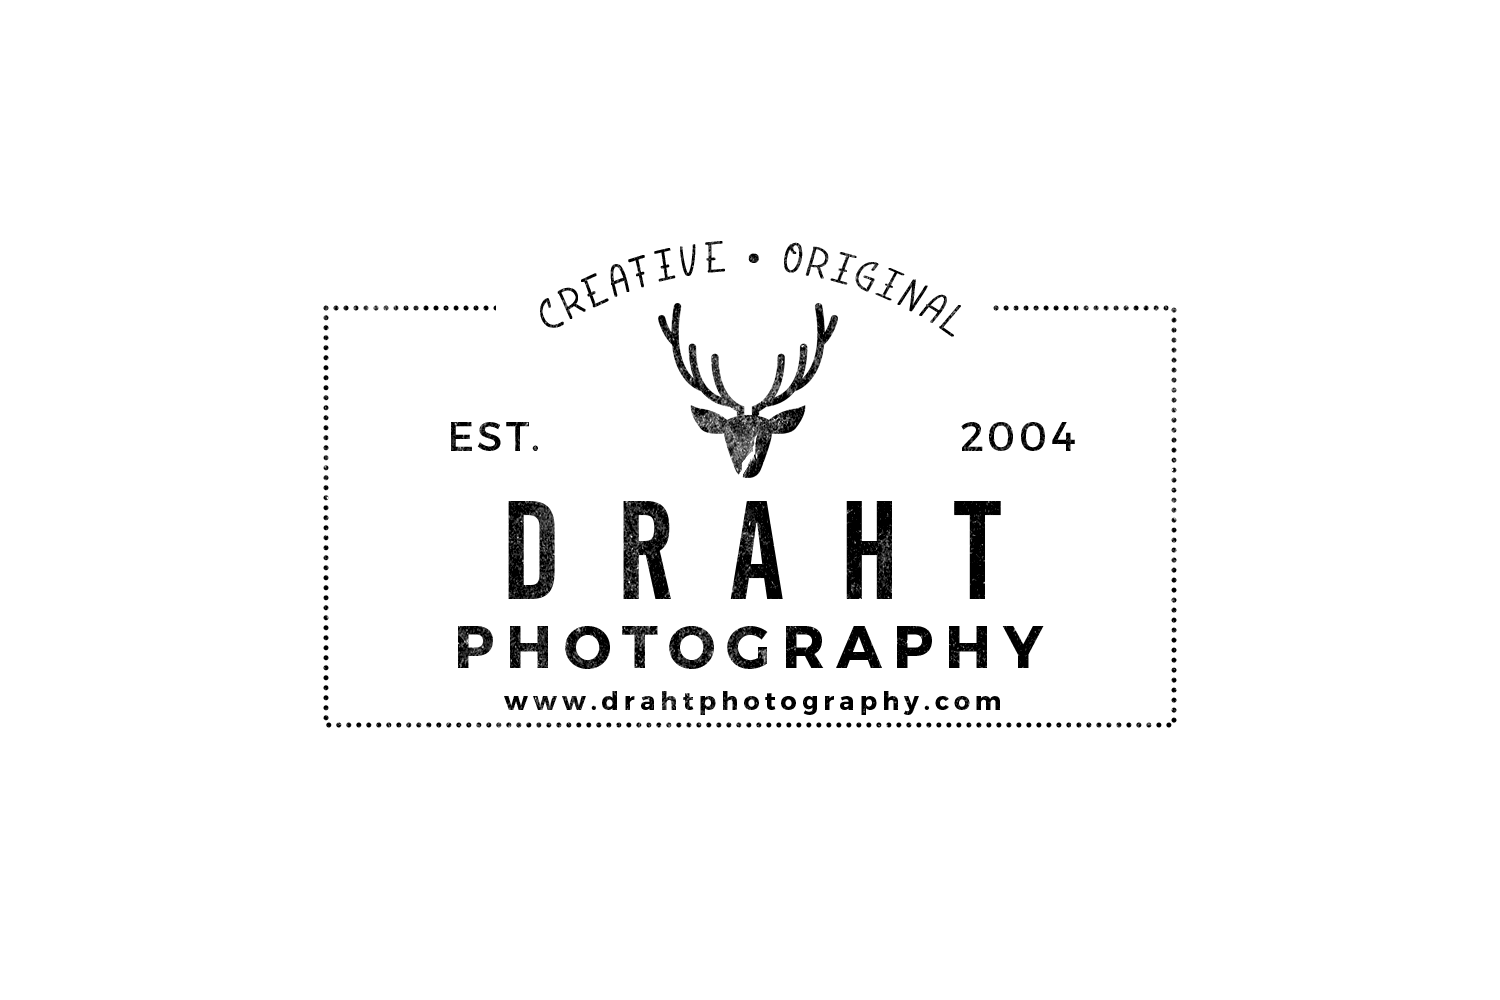 Draht Photography: 10% Off When Paid in Bitcoin! |